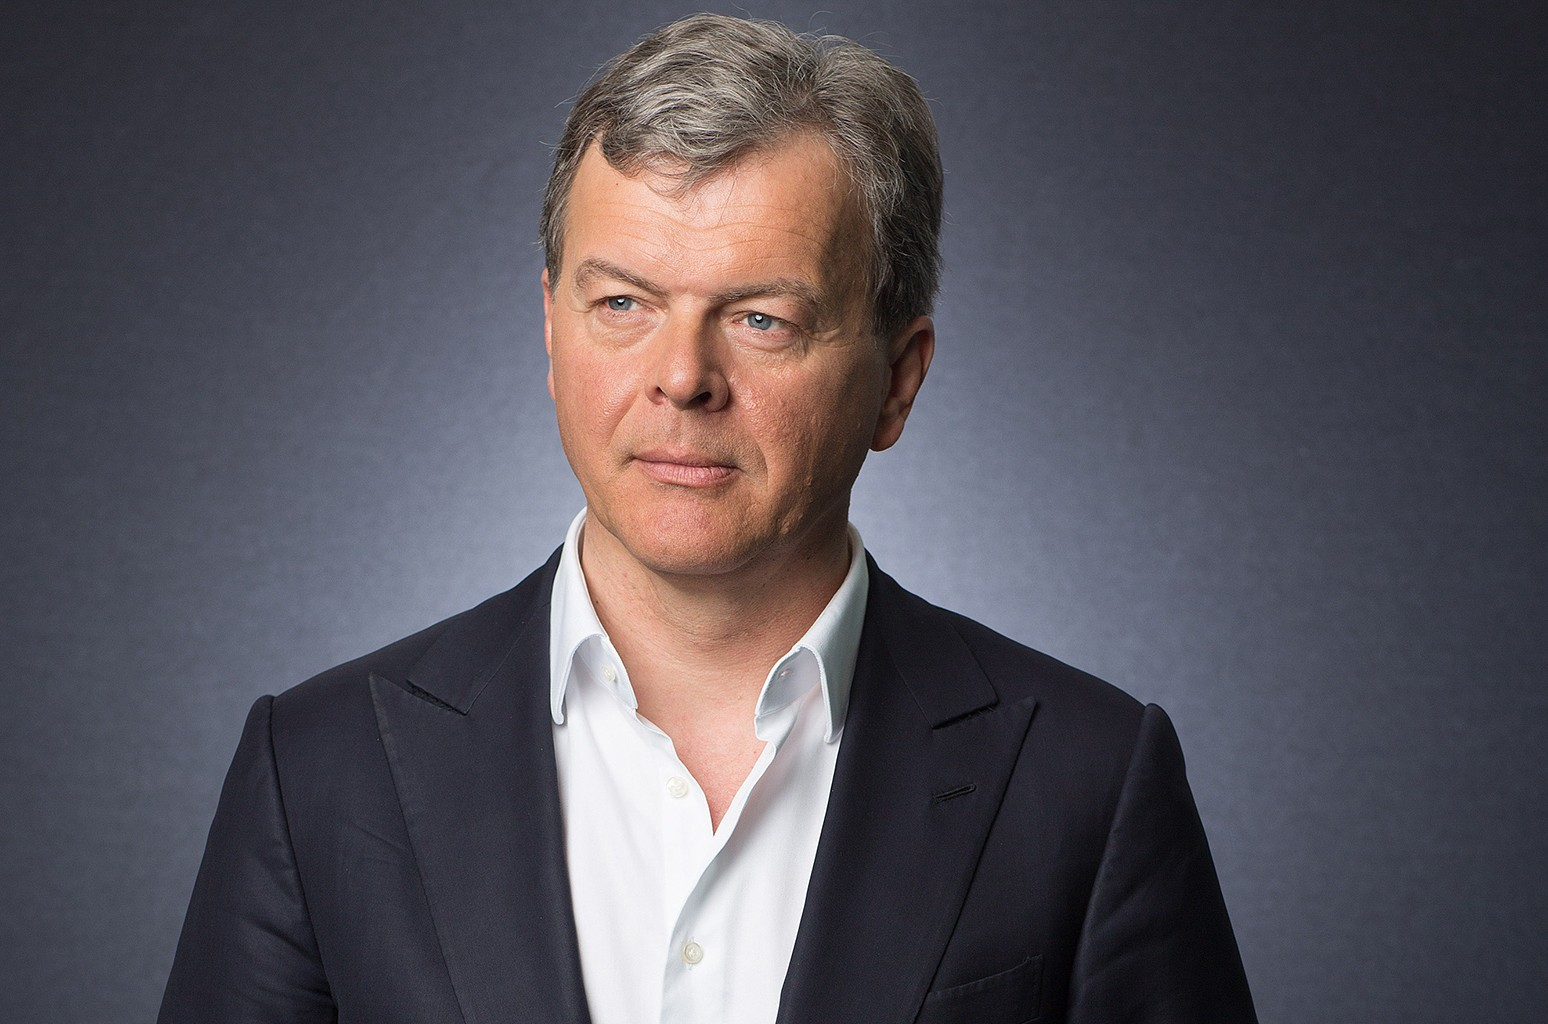 Hans-Holger Albrecht, chief executive officer of Deezer SA, photographed on March 30, 2016.